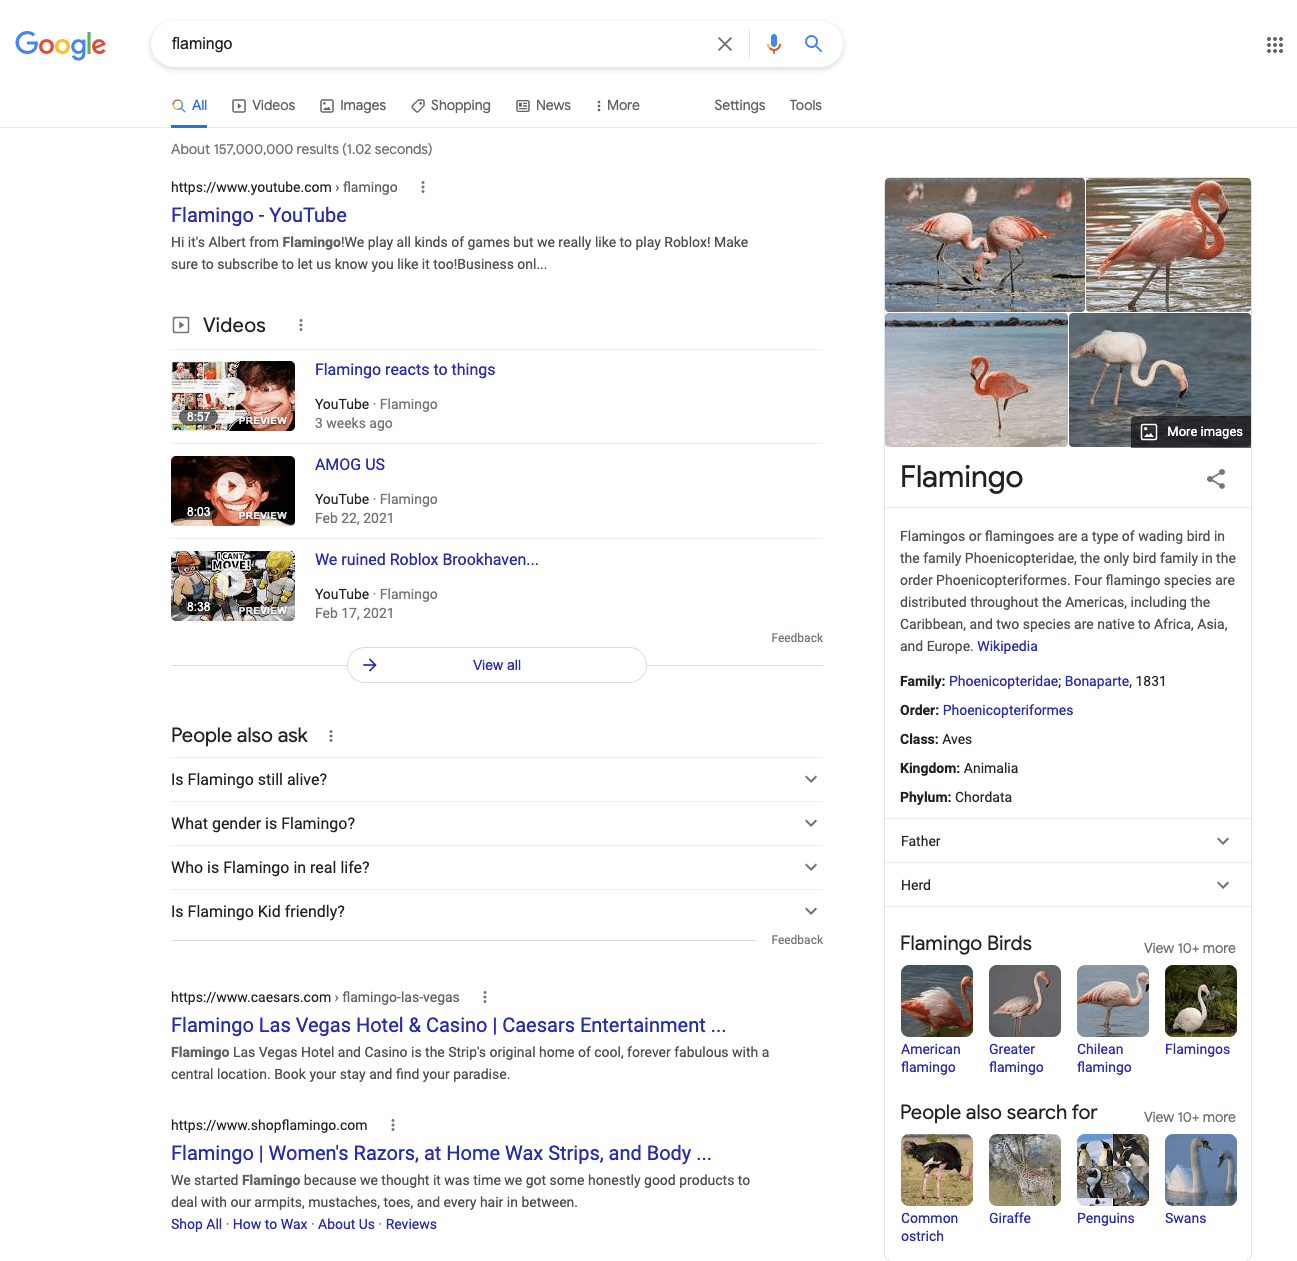 Search results for a general query